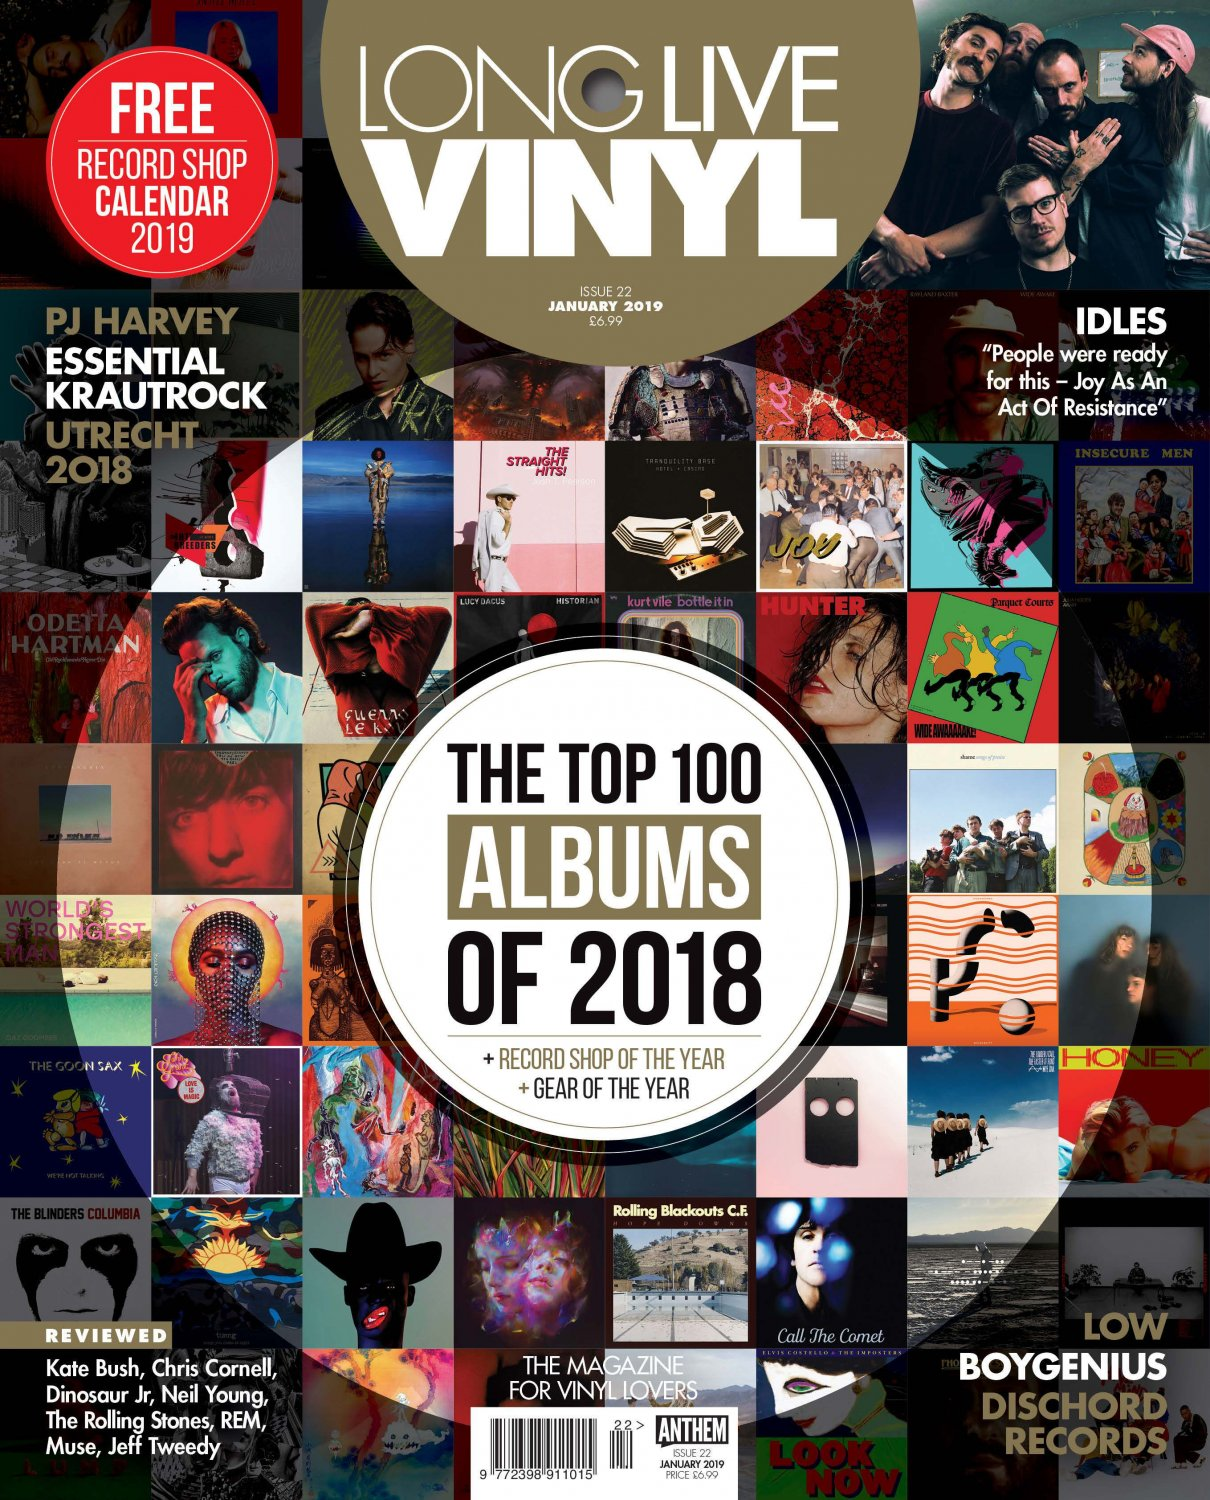 Long Live Vinyl Magazine Issue 22 (January 2019) The Top 100 Music Albums of 2018